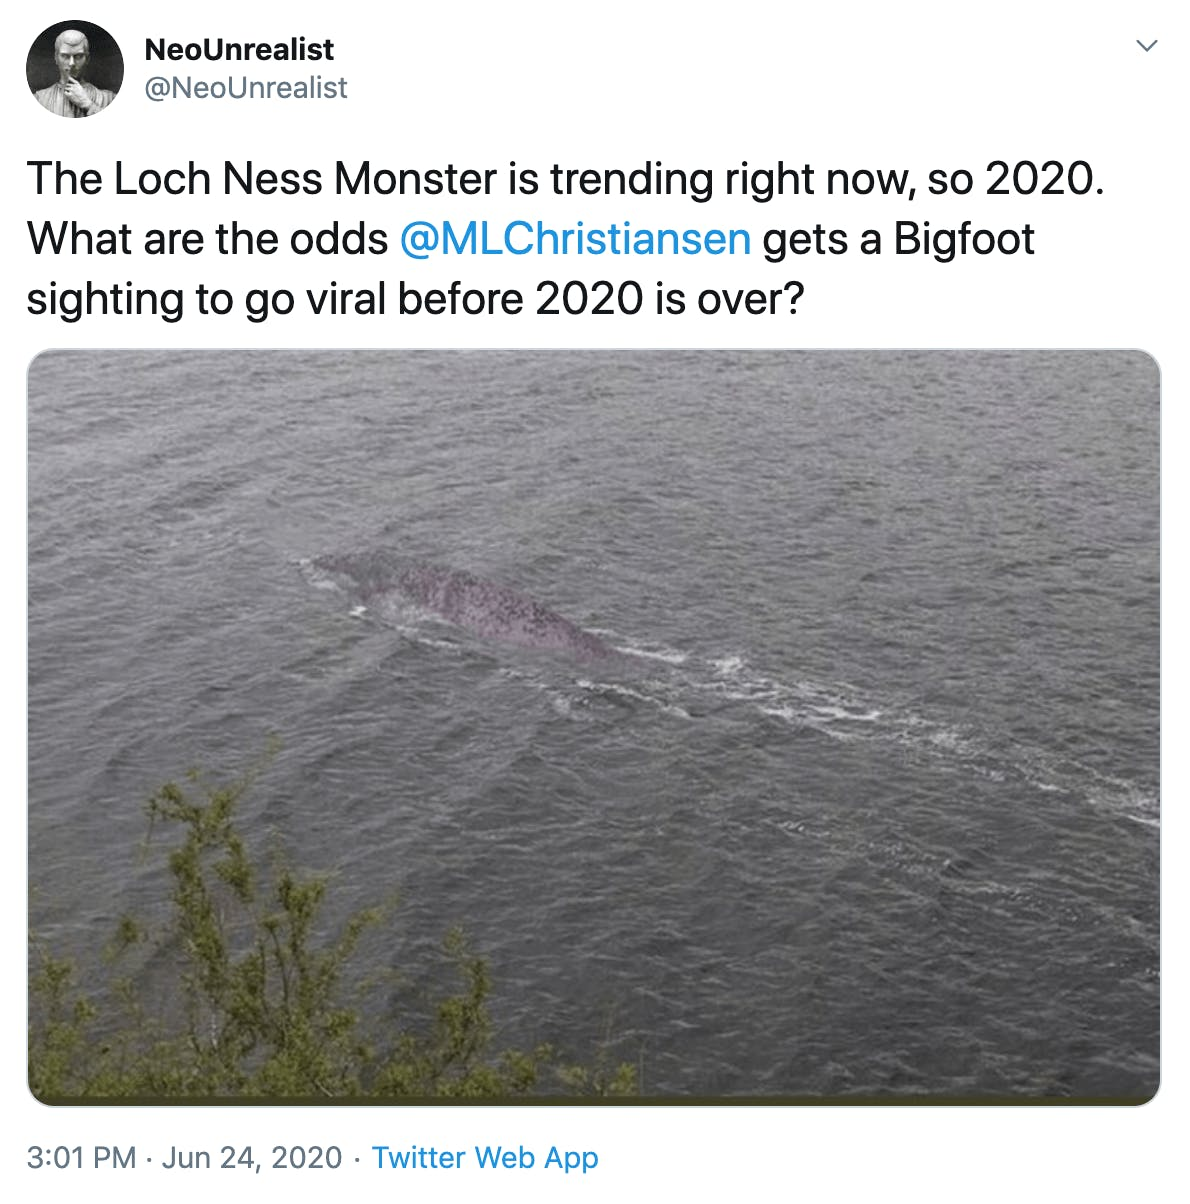 The Loch Ness Monster is trending right now, so 2020. What are the odds  @MLChristiansen  gets a Bigfoot sighting to go viral before 2020 is over?